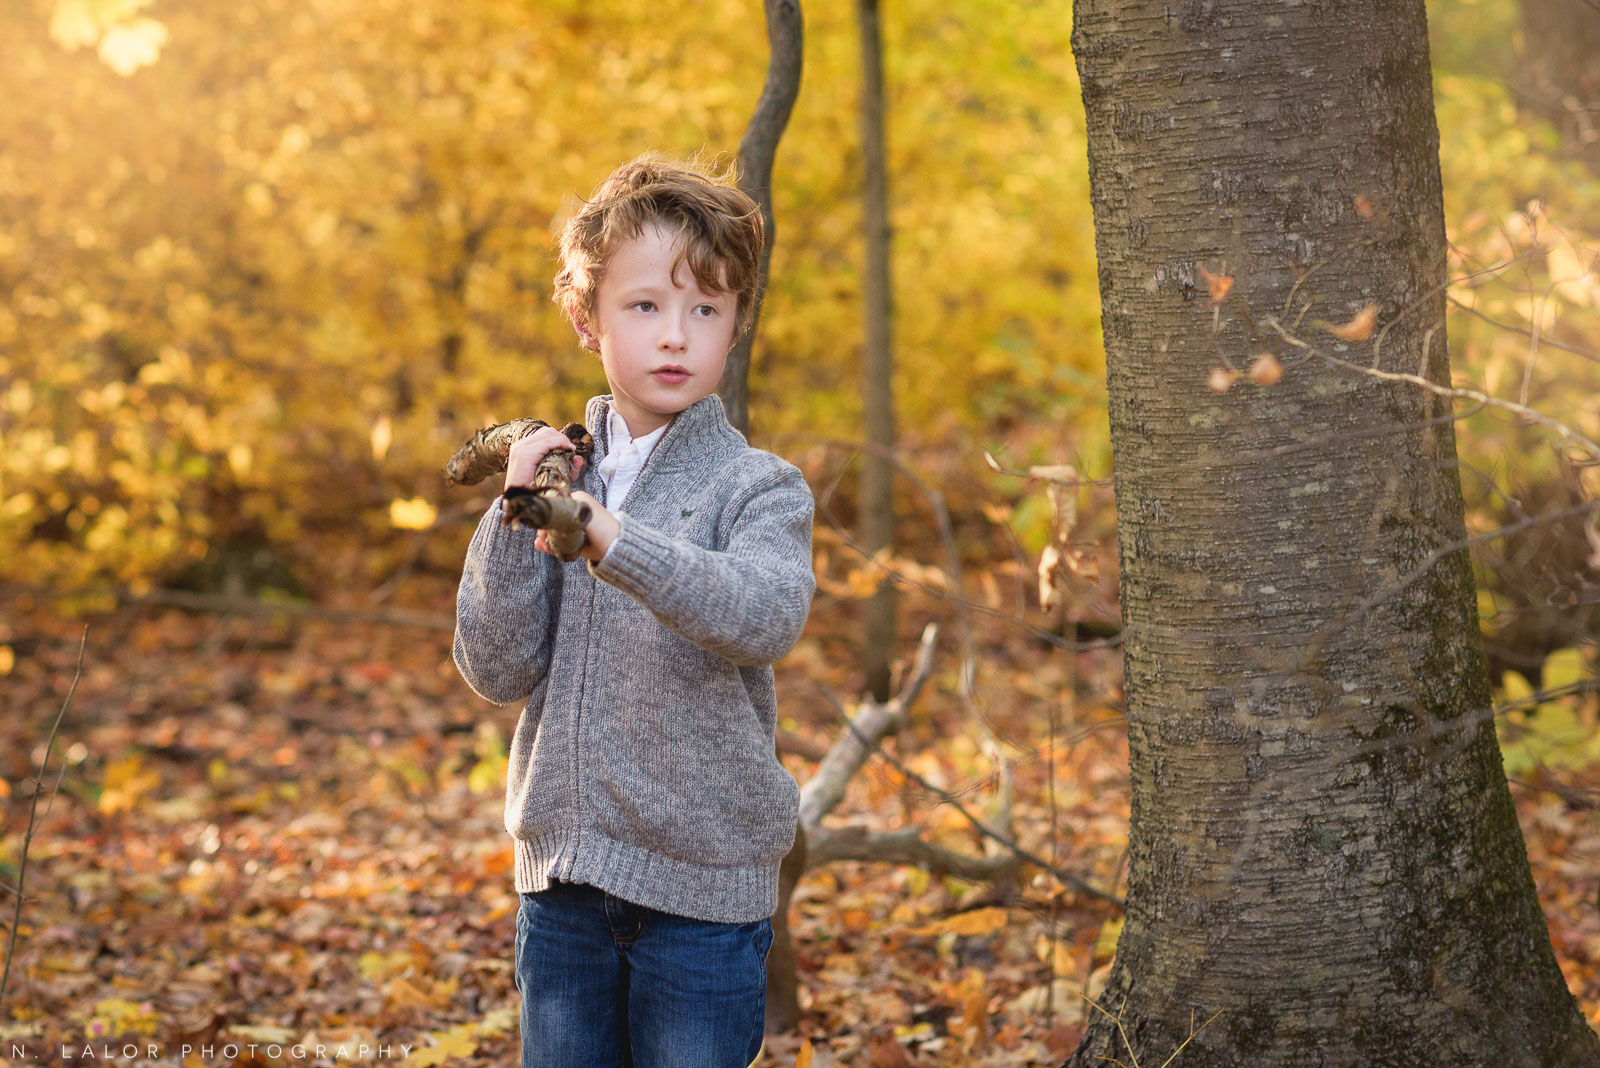 Playing with sticks. A lifestyle portrait of a 6-year old boy at the New Canaan Nature Center. Photo by N. Lalor Photography